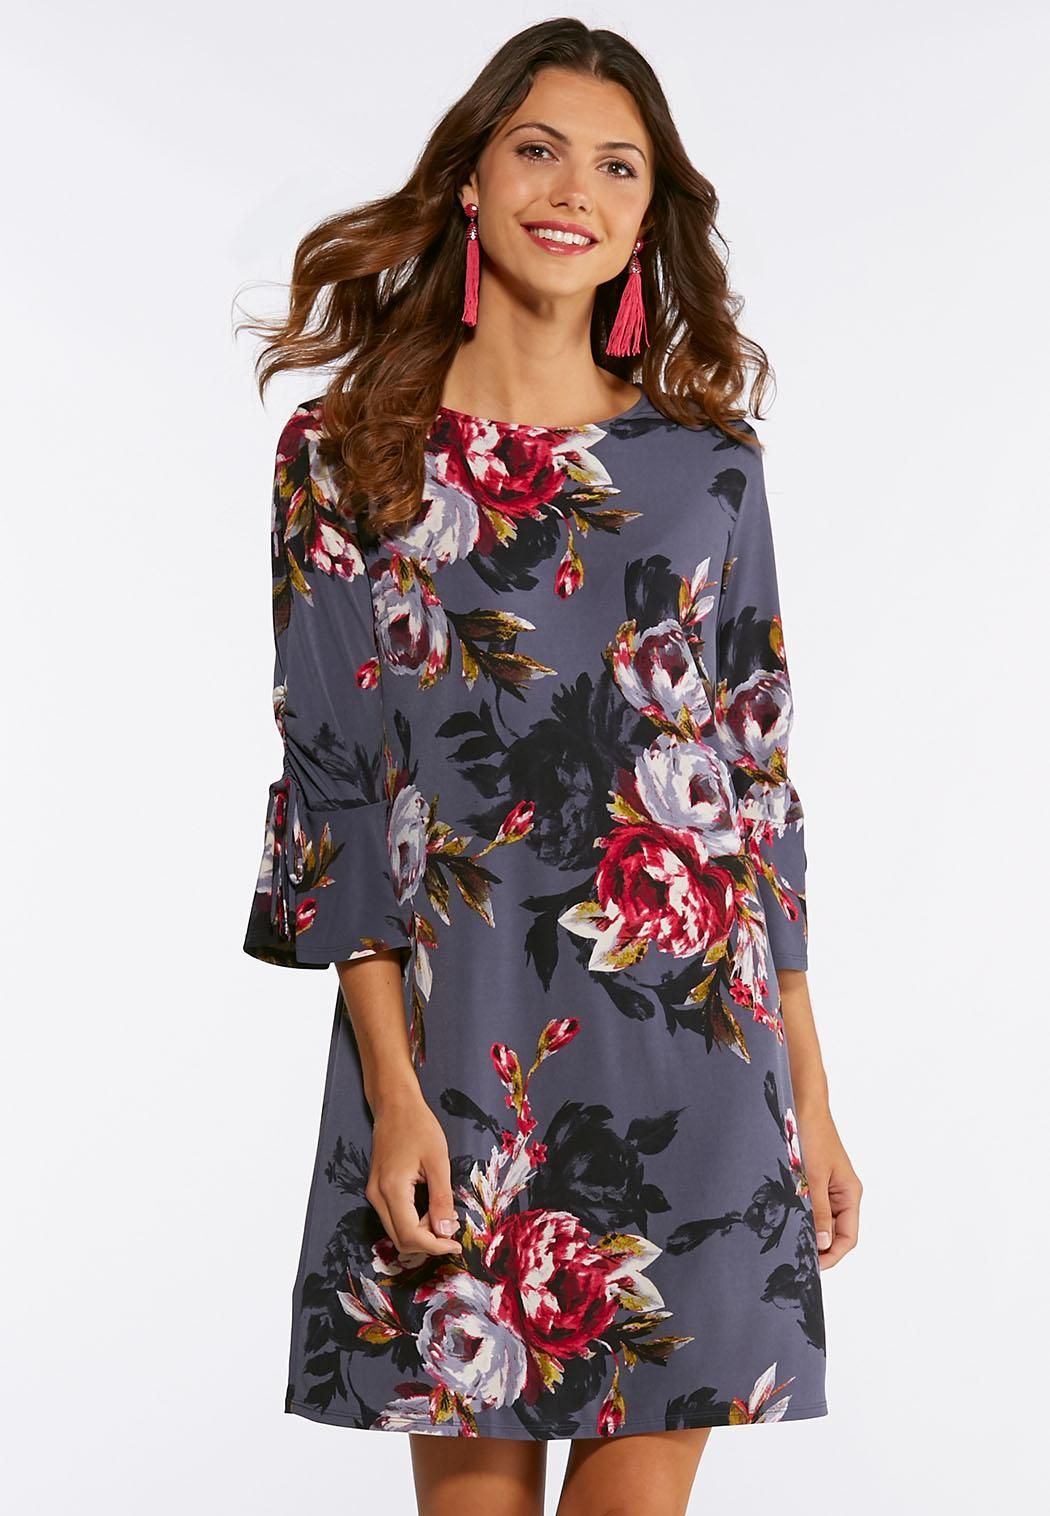 fc141ada869 Bell Sleeve Floral Swing Dress  catoconfident